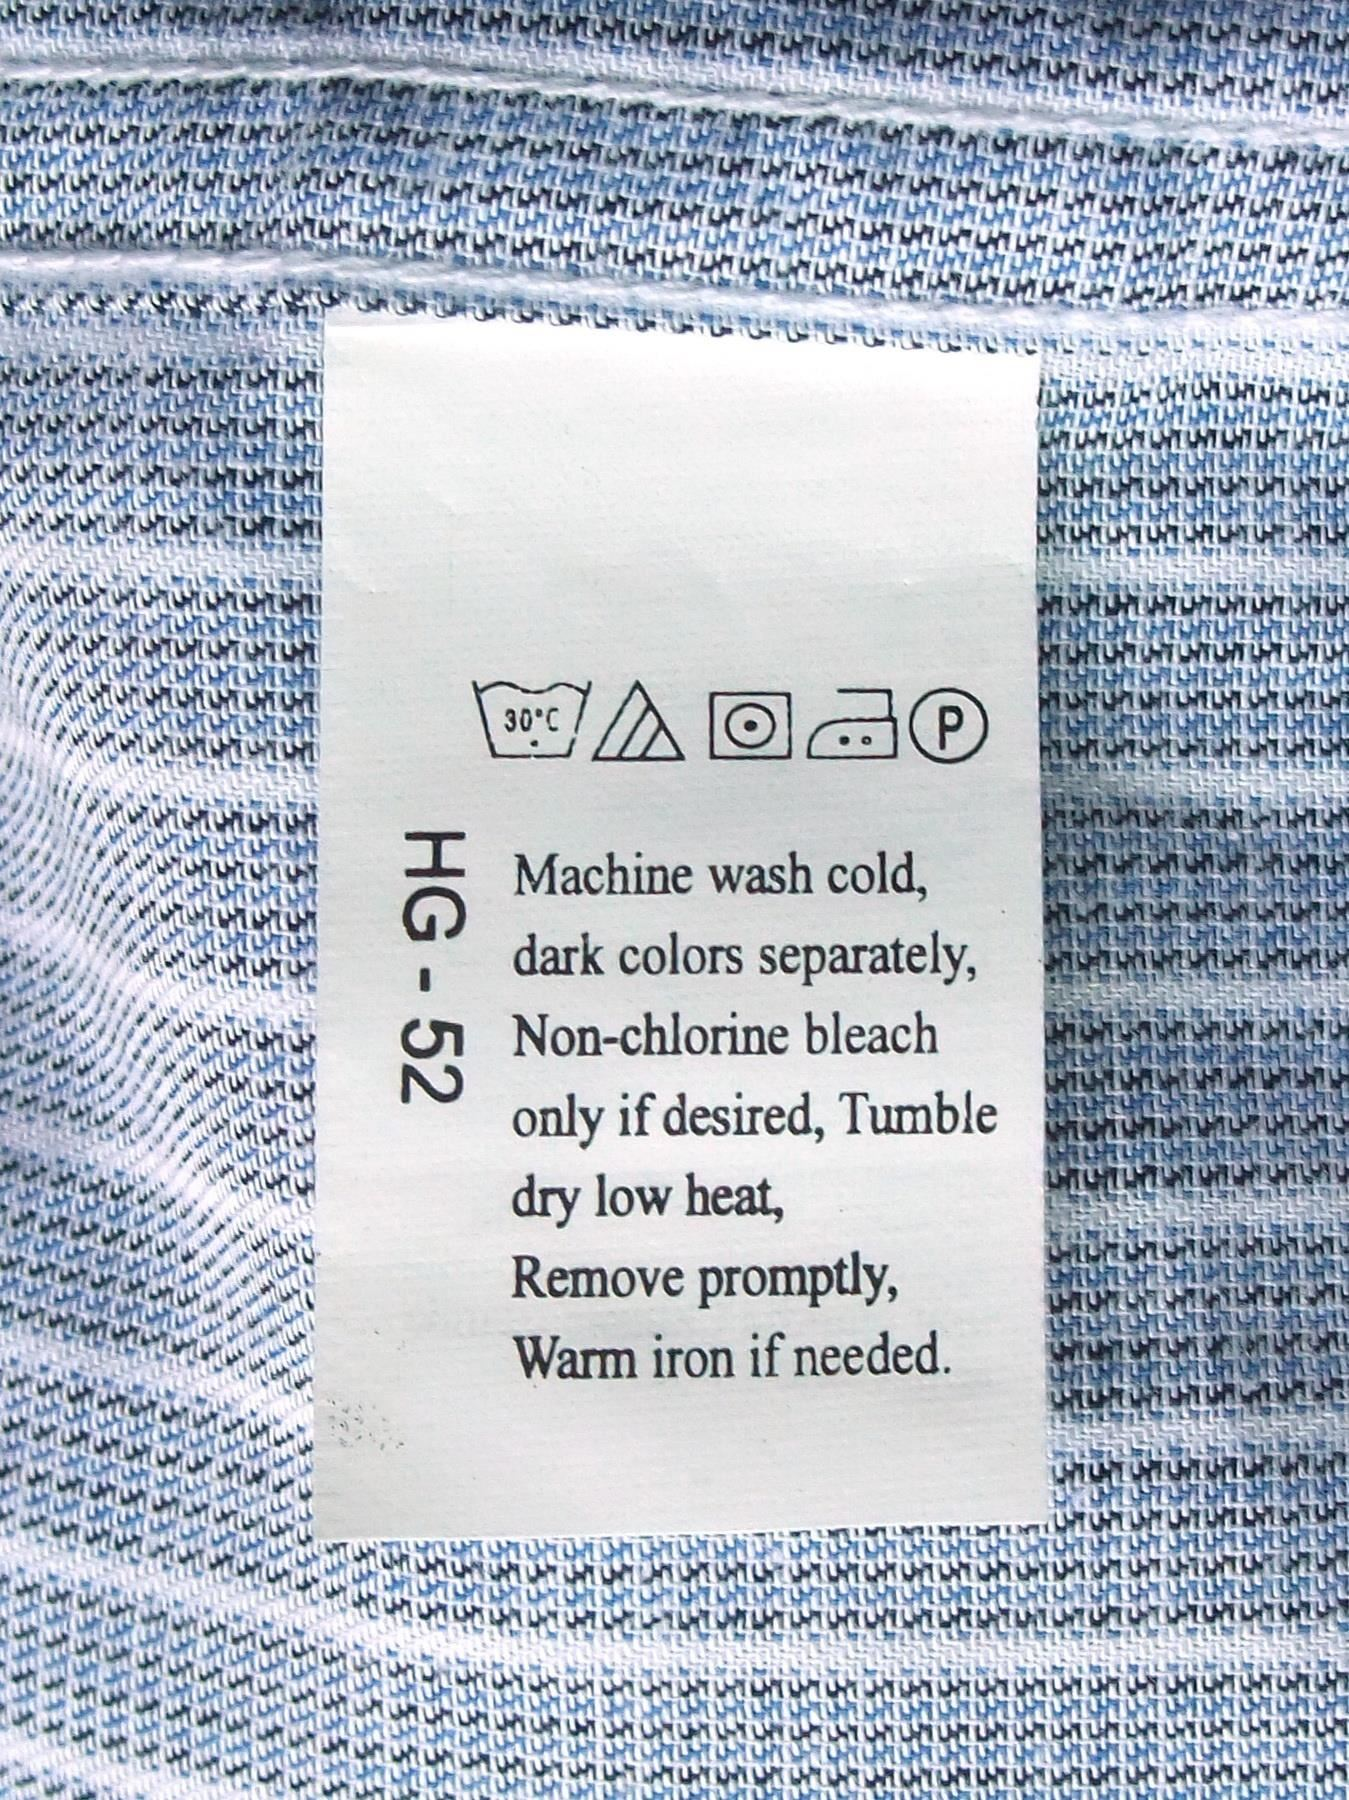 The Secret To Washing Your Dry Clean Clothes Without